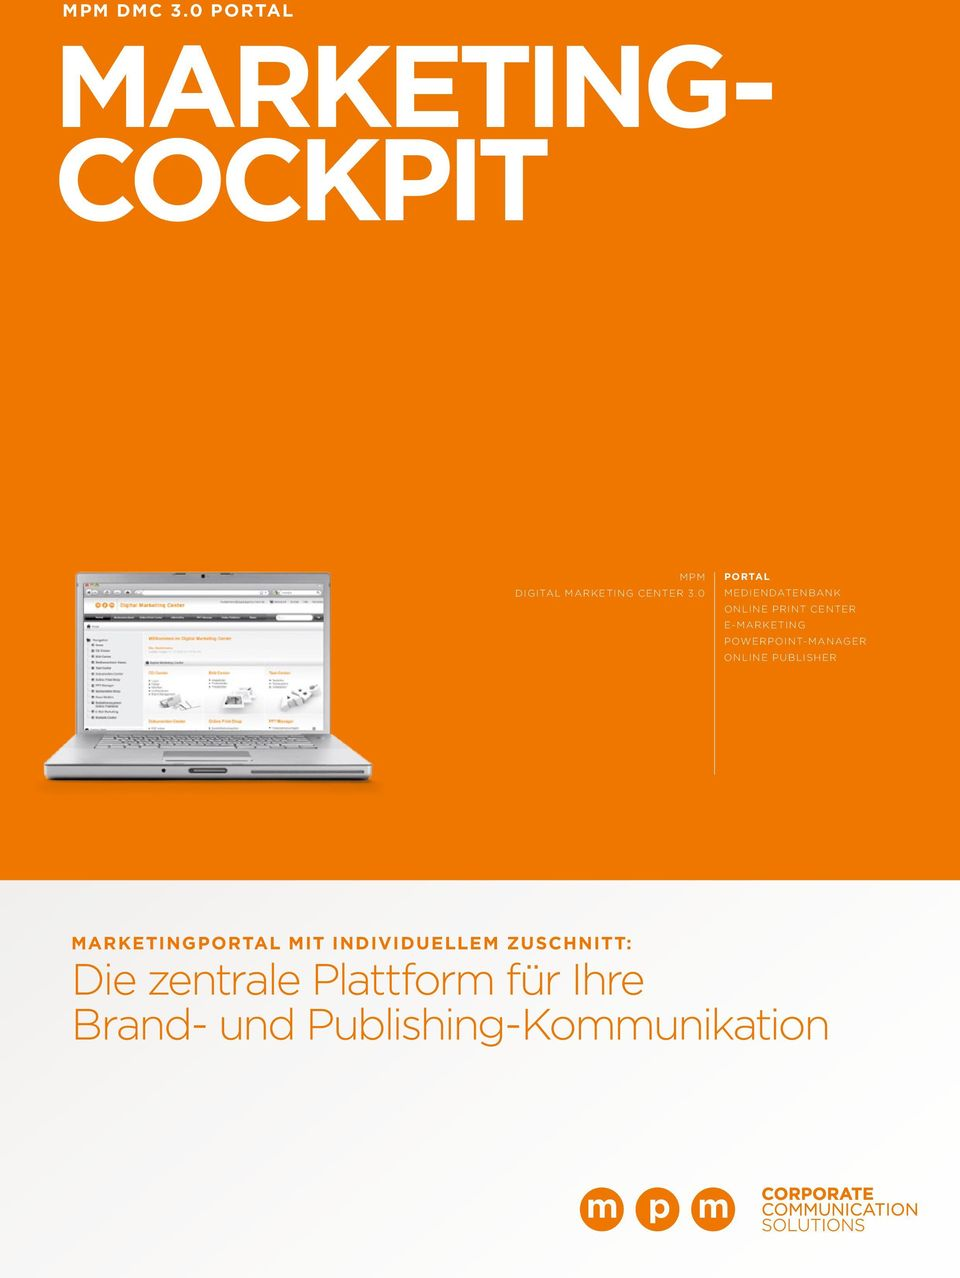 POWERPOINT-MANAGER ONLINE PUBLISHER Marketingportal mit